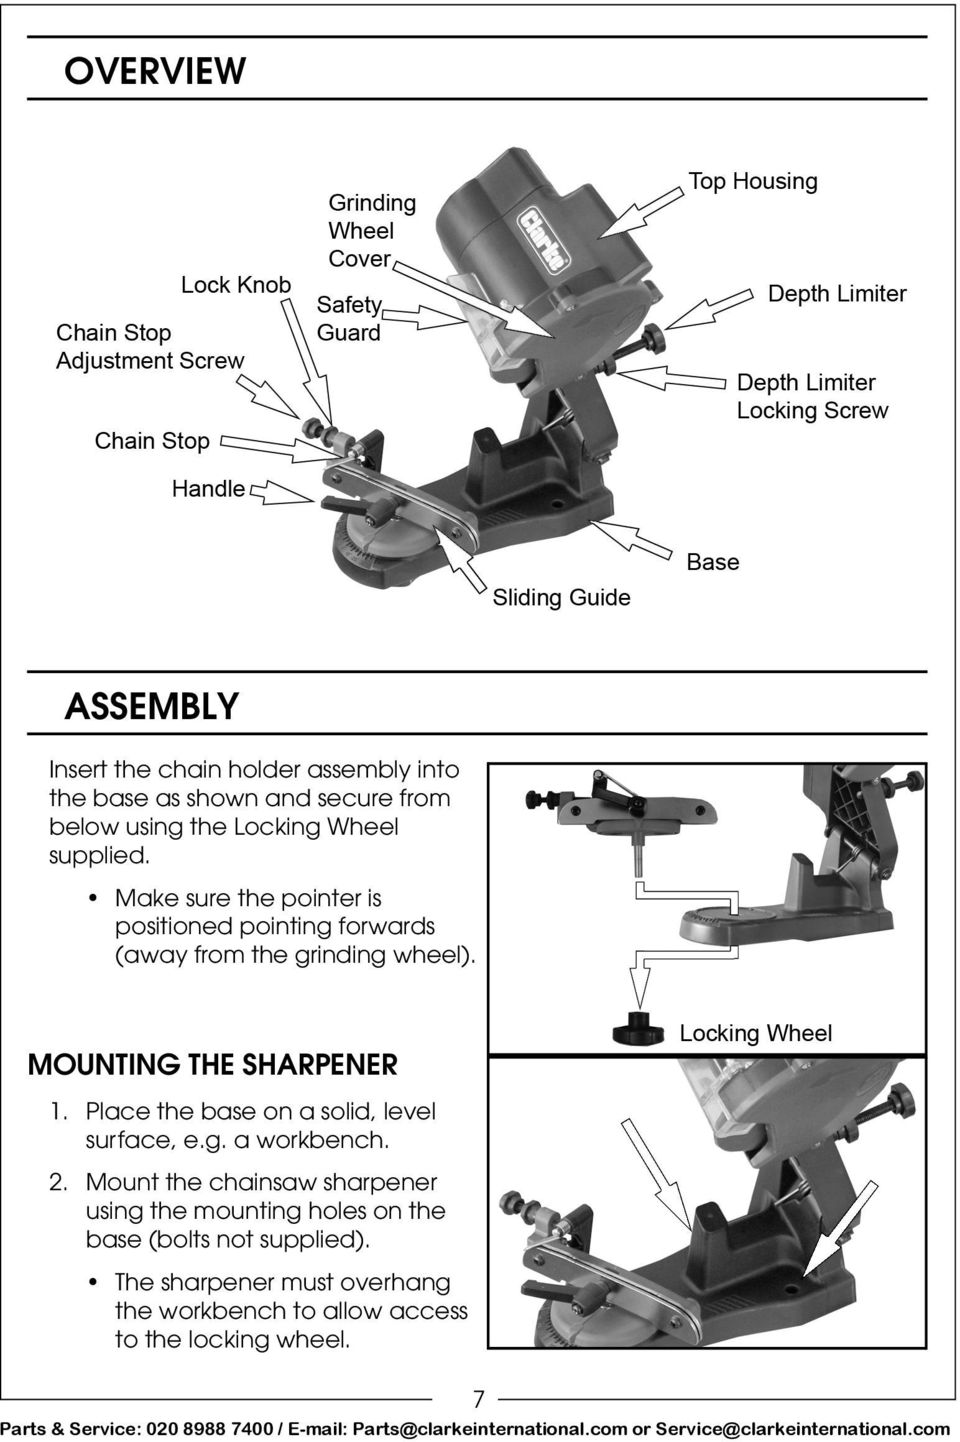 MOUNTING THE SHARPENER 1. Place the base on a solid, level surface, e.g. a workbench. 2.